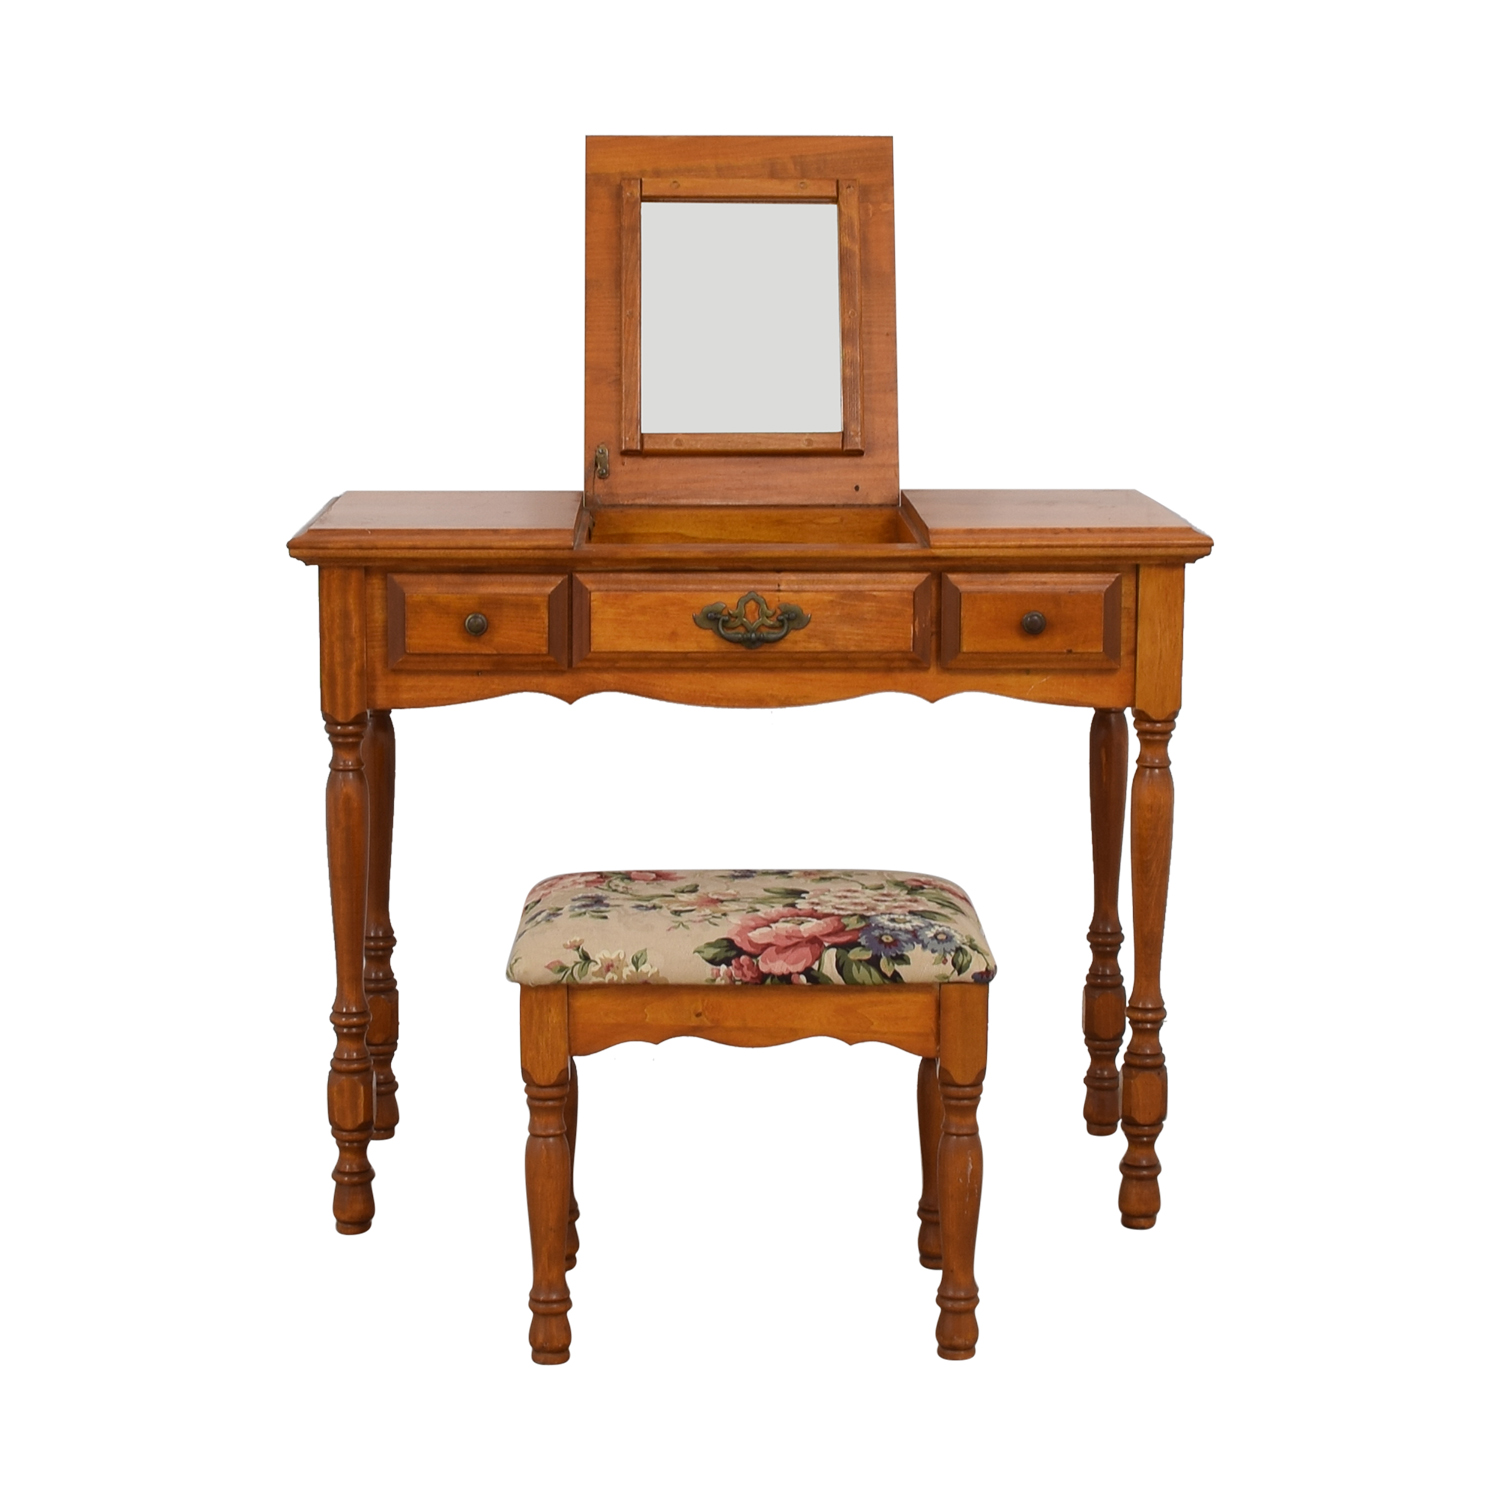 Wood Three-Drawer Desk or Vanity with Mirror and Floral Bench coupon